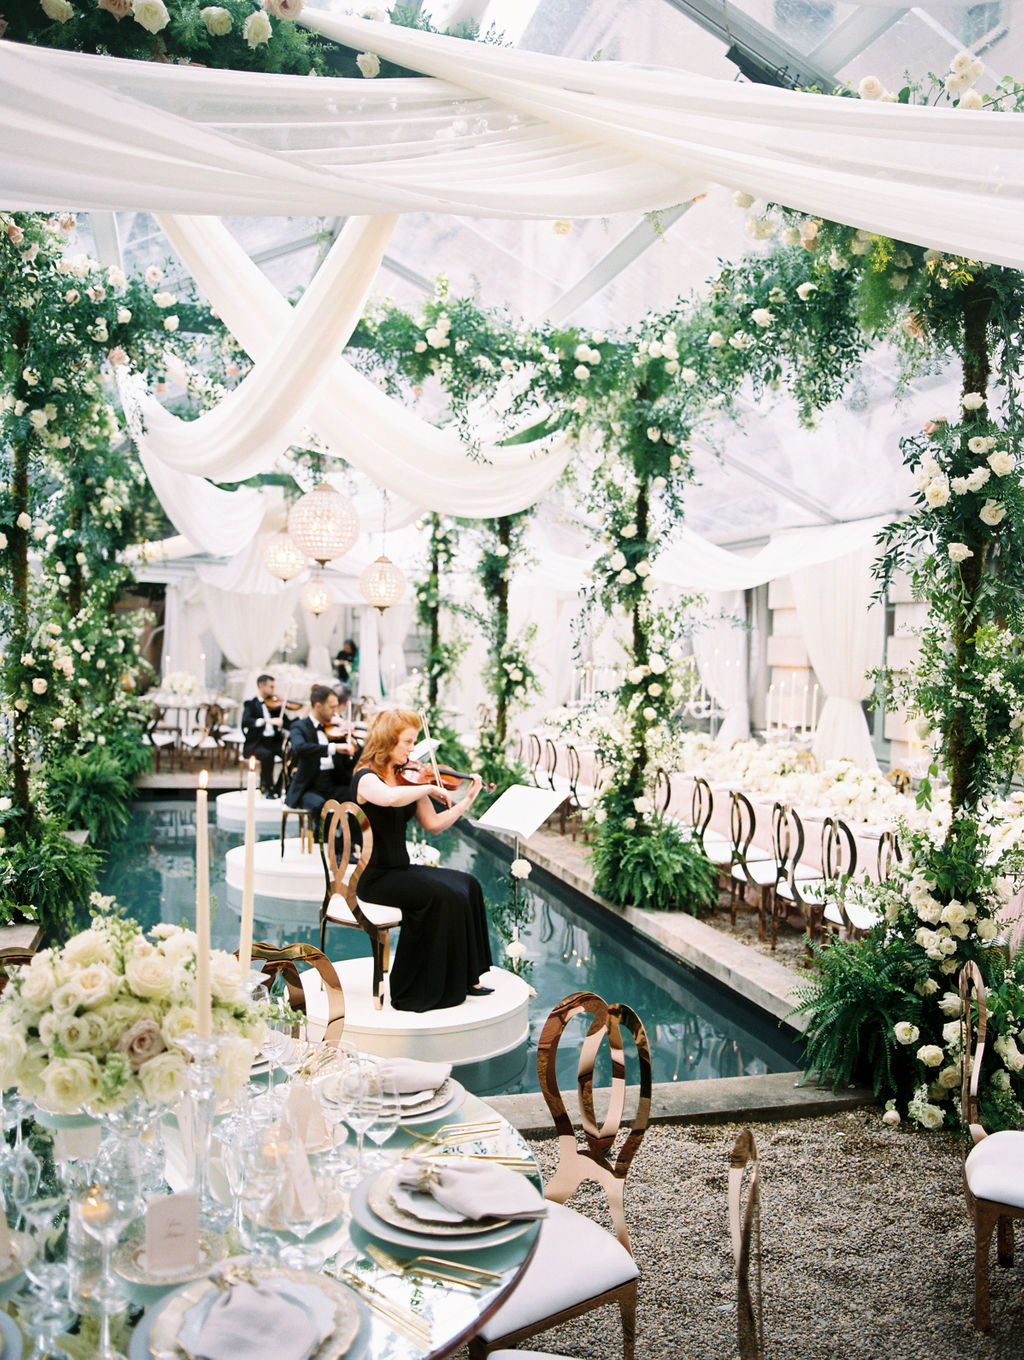 musicians playing for elegant wedding ceremony surrounded by florals